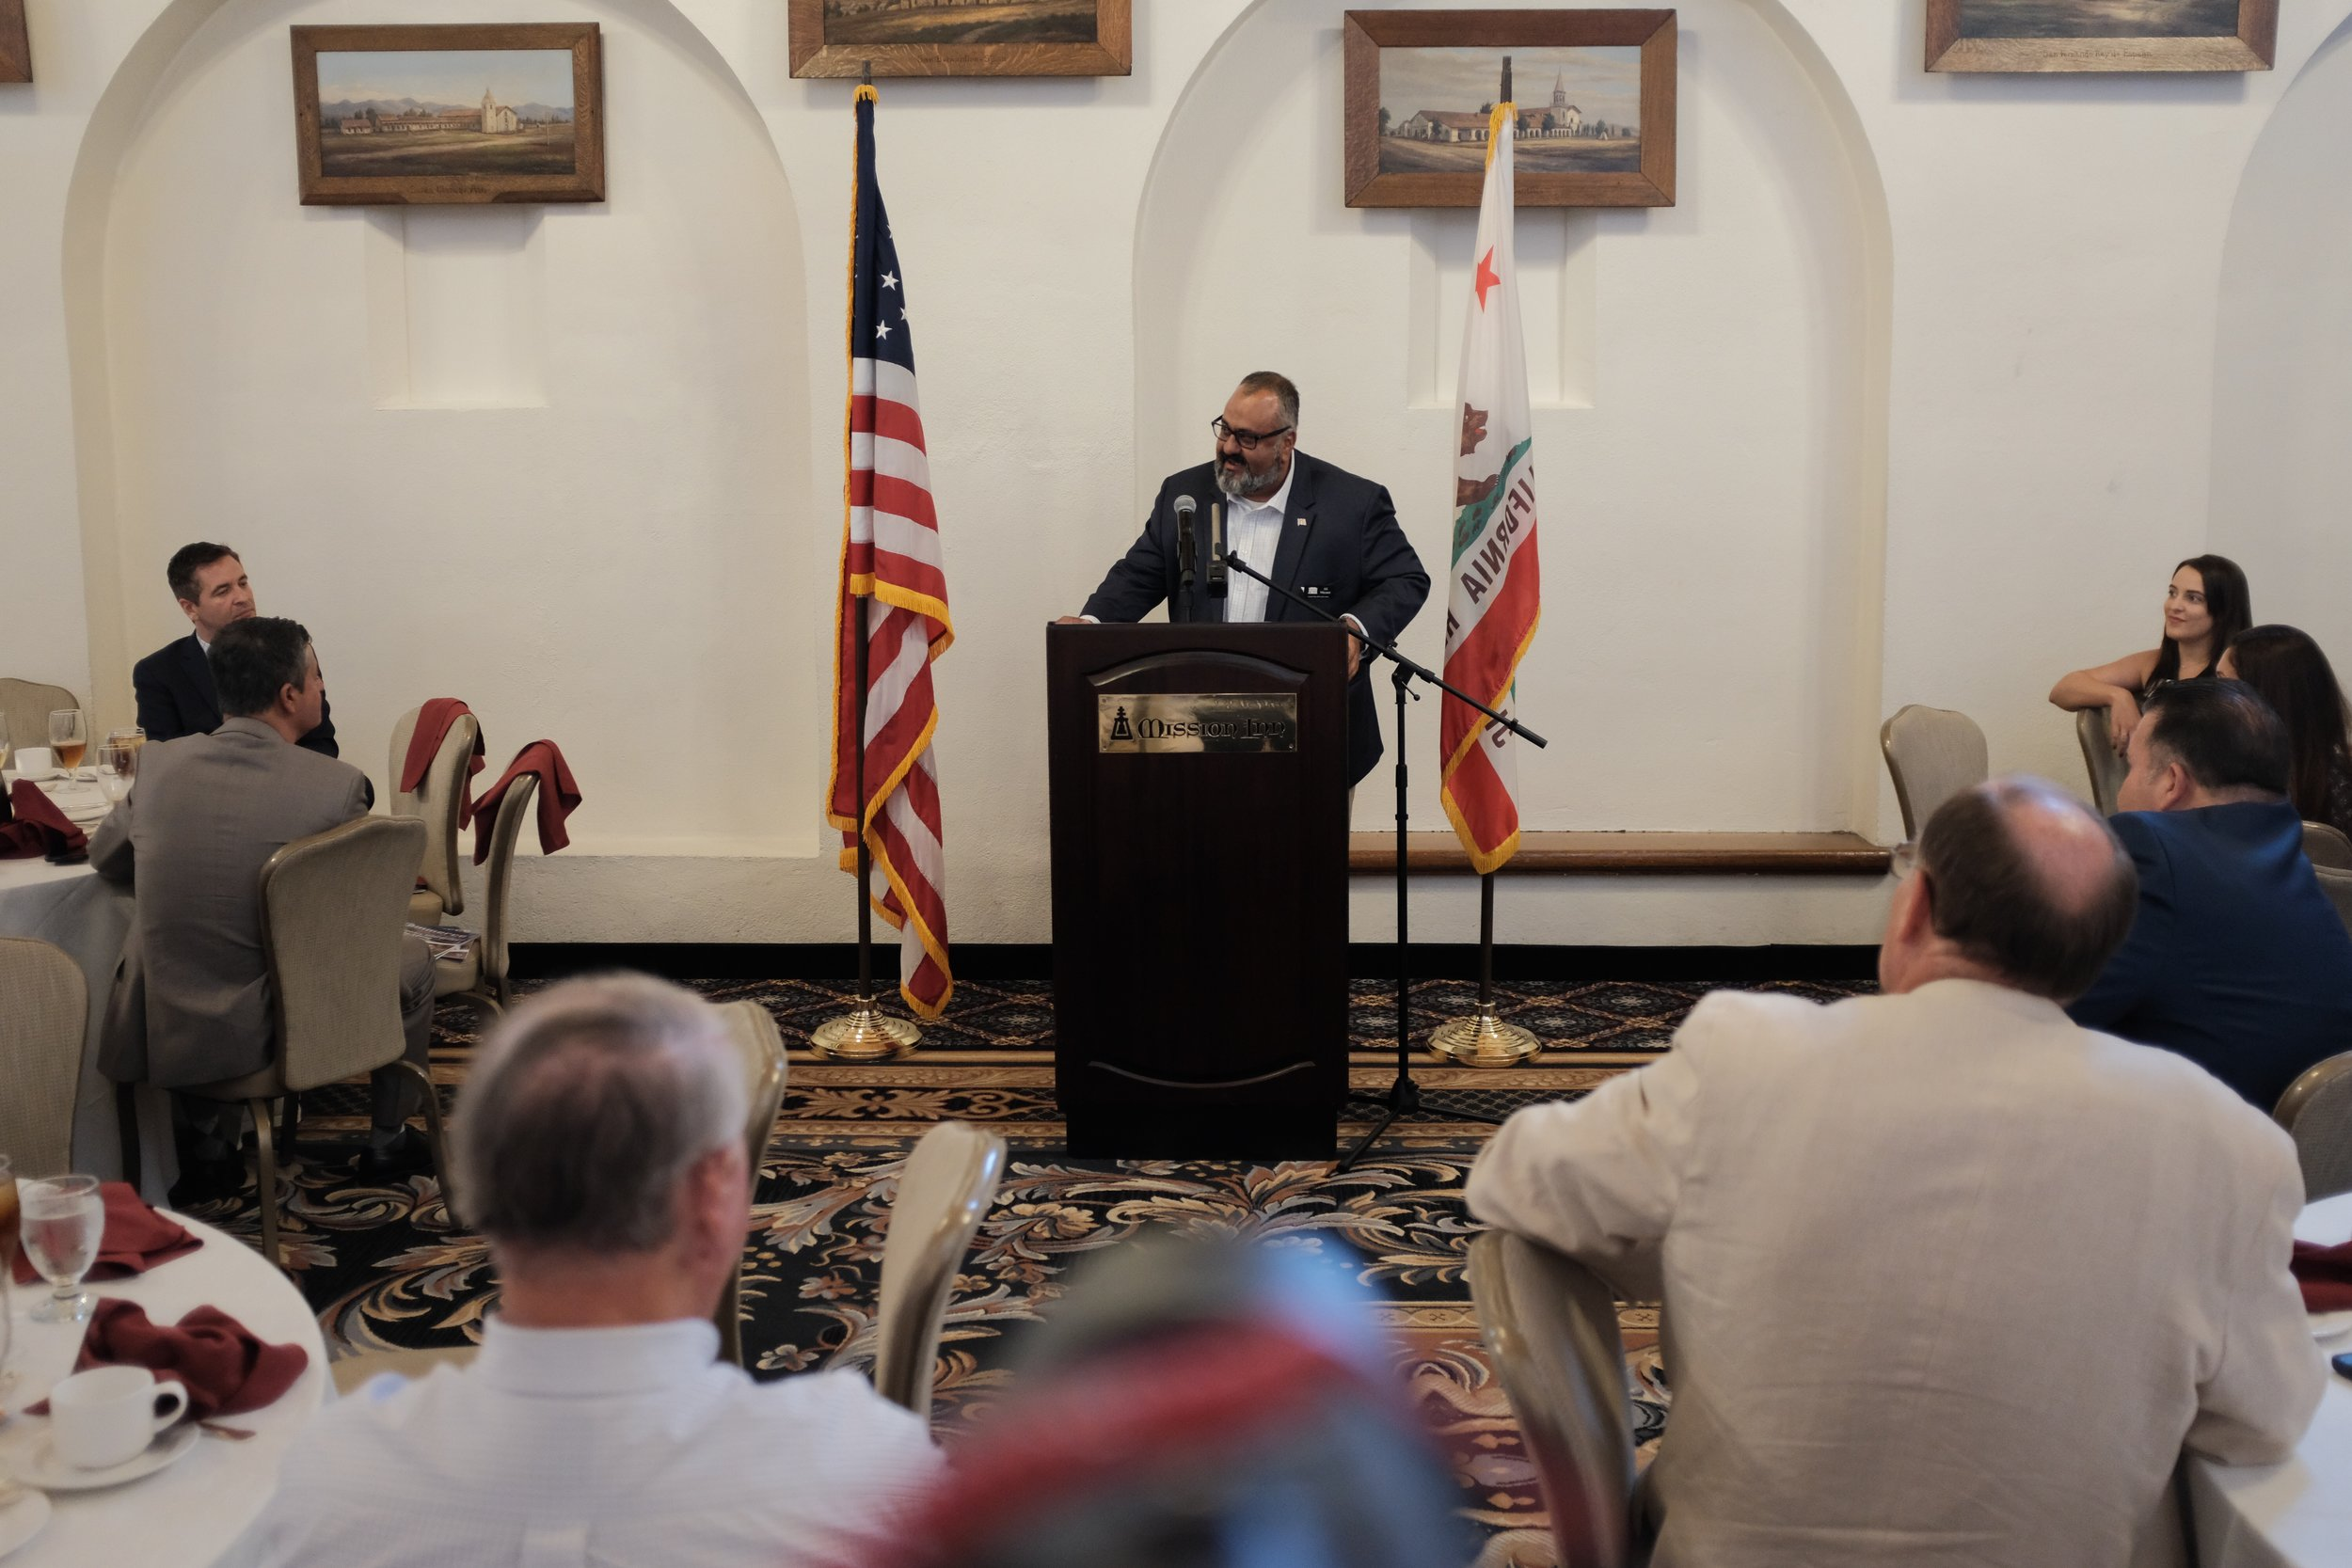 Ali Mazarei speaking at today's Lincoln Club Meeting.